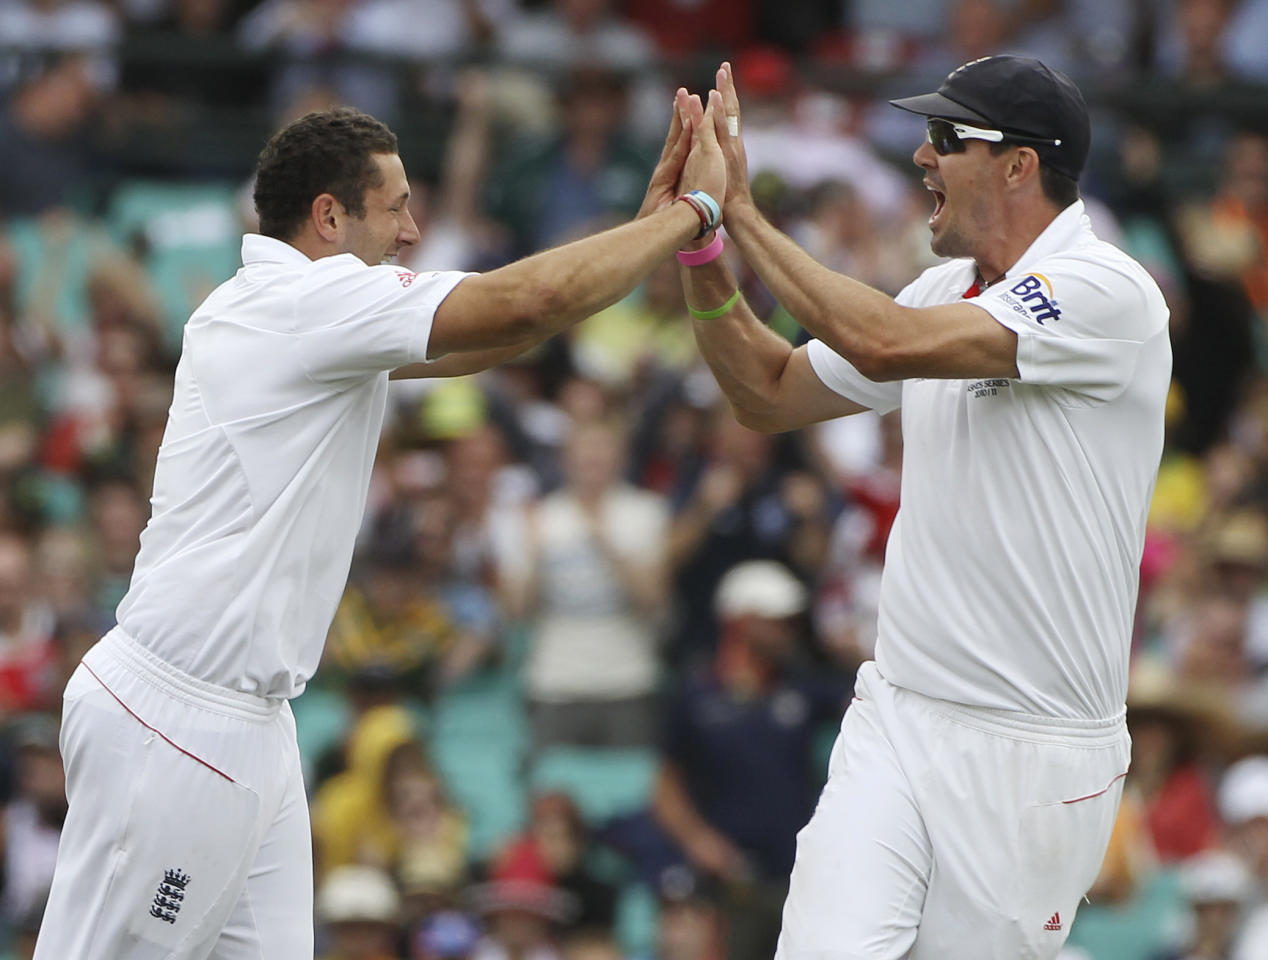 England's Tim Bresnan, left, celebrates with teammate Kevin Pietersen after dismissing Australian captain Michael Clarke on the first day's play of their fifth and final Ashes cricket test at the Sydney Cricket Ground in Sydney, Australia, Monday, Jan. 3, 2011.